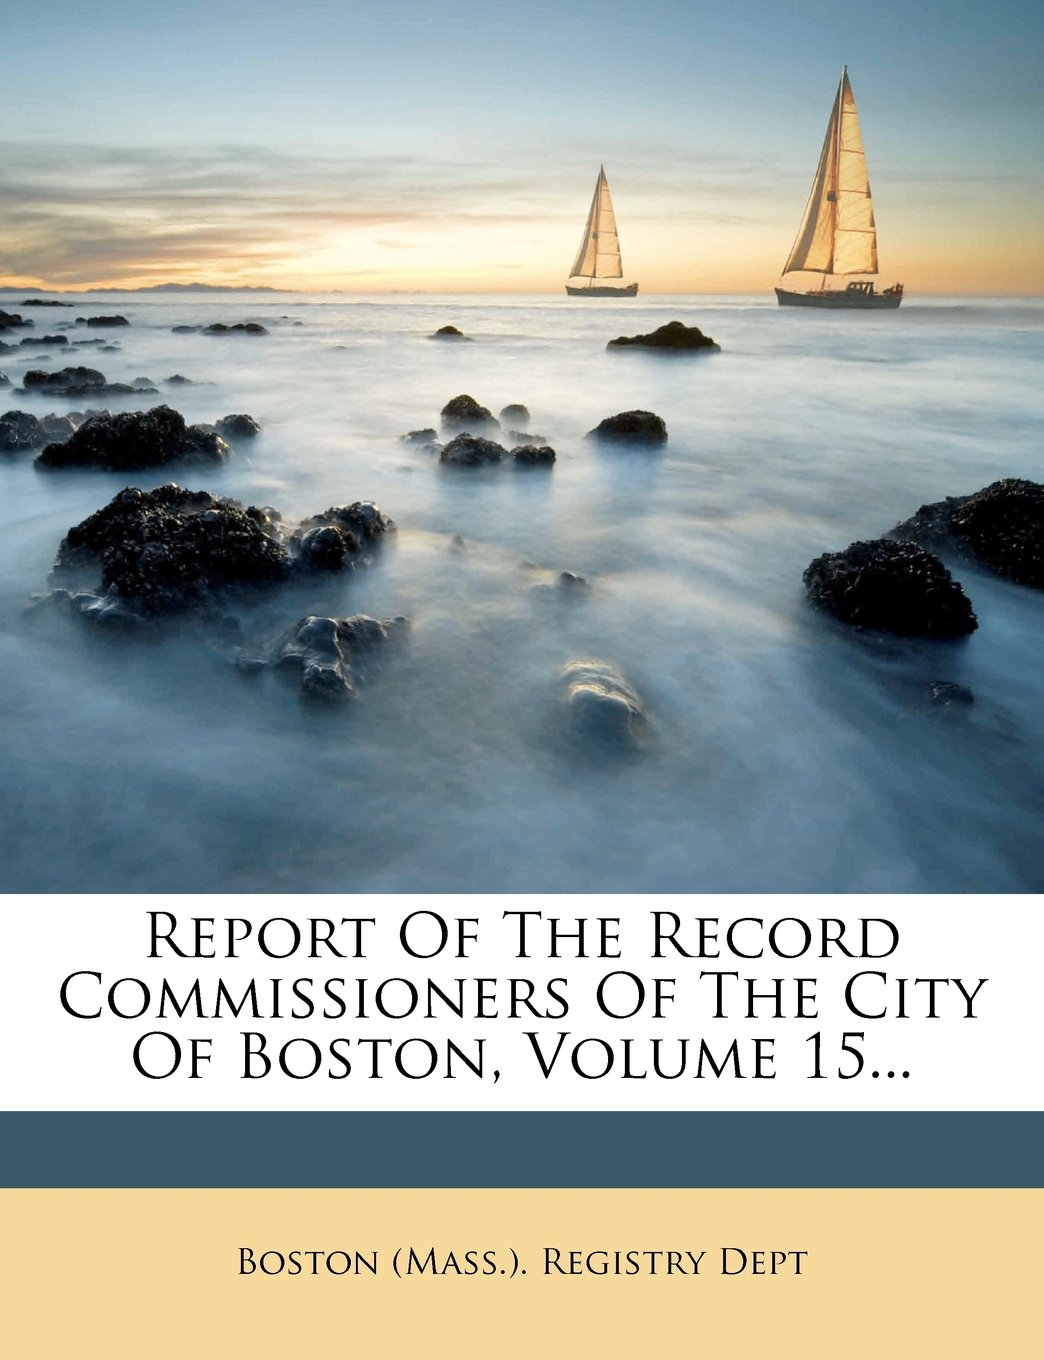 Report of the Record Commissioners of the City of Boston, Volume 15...